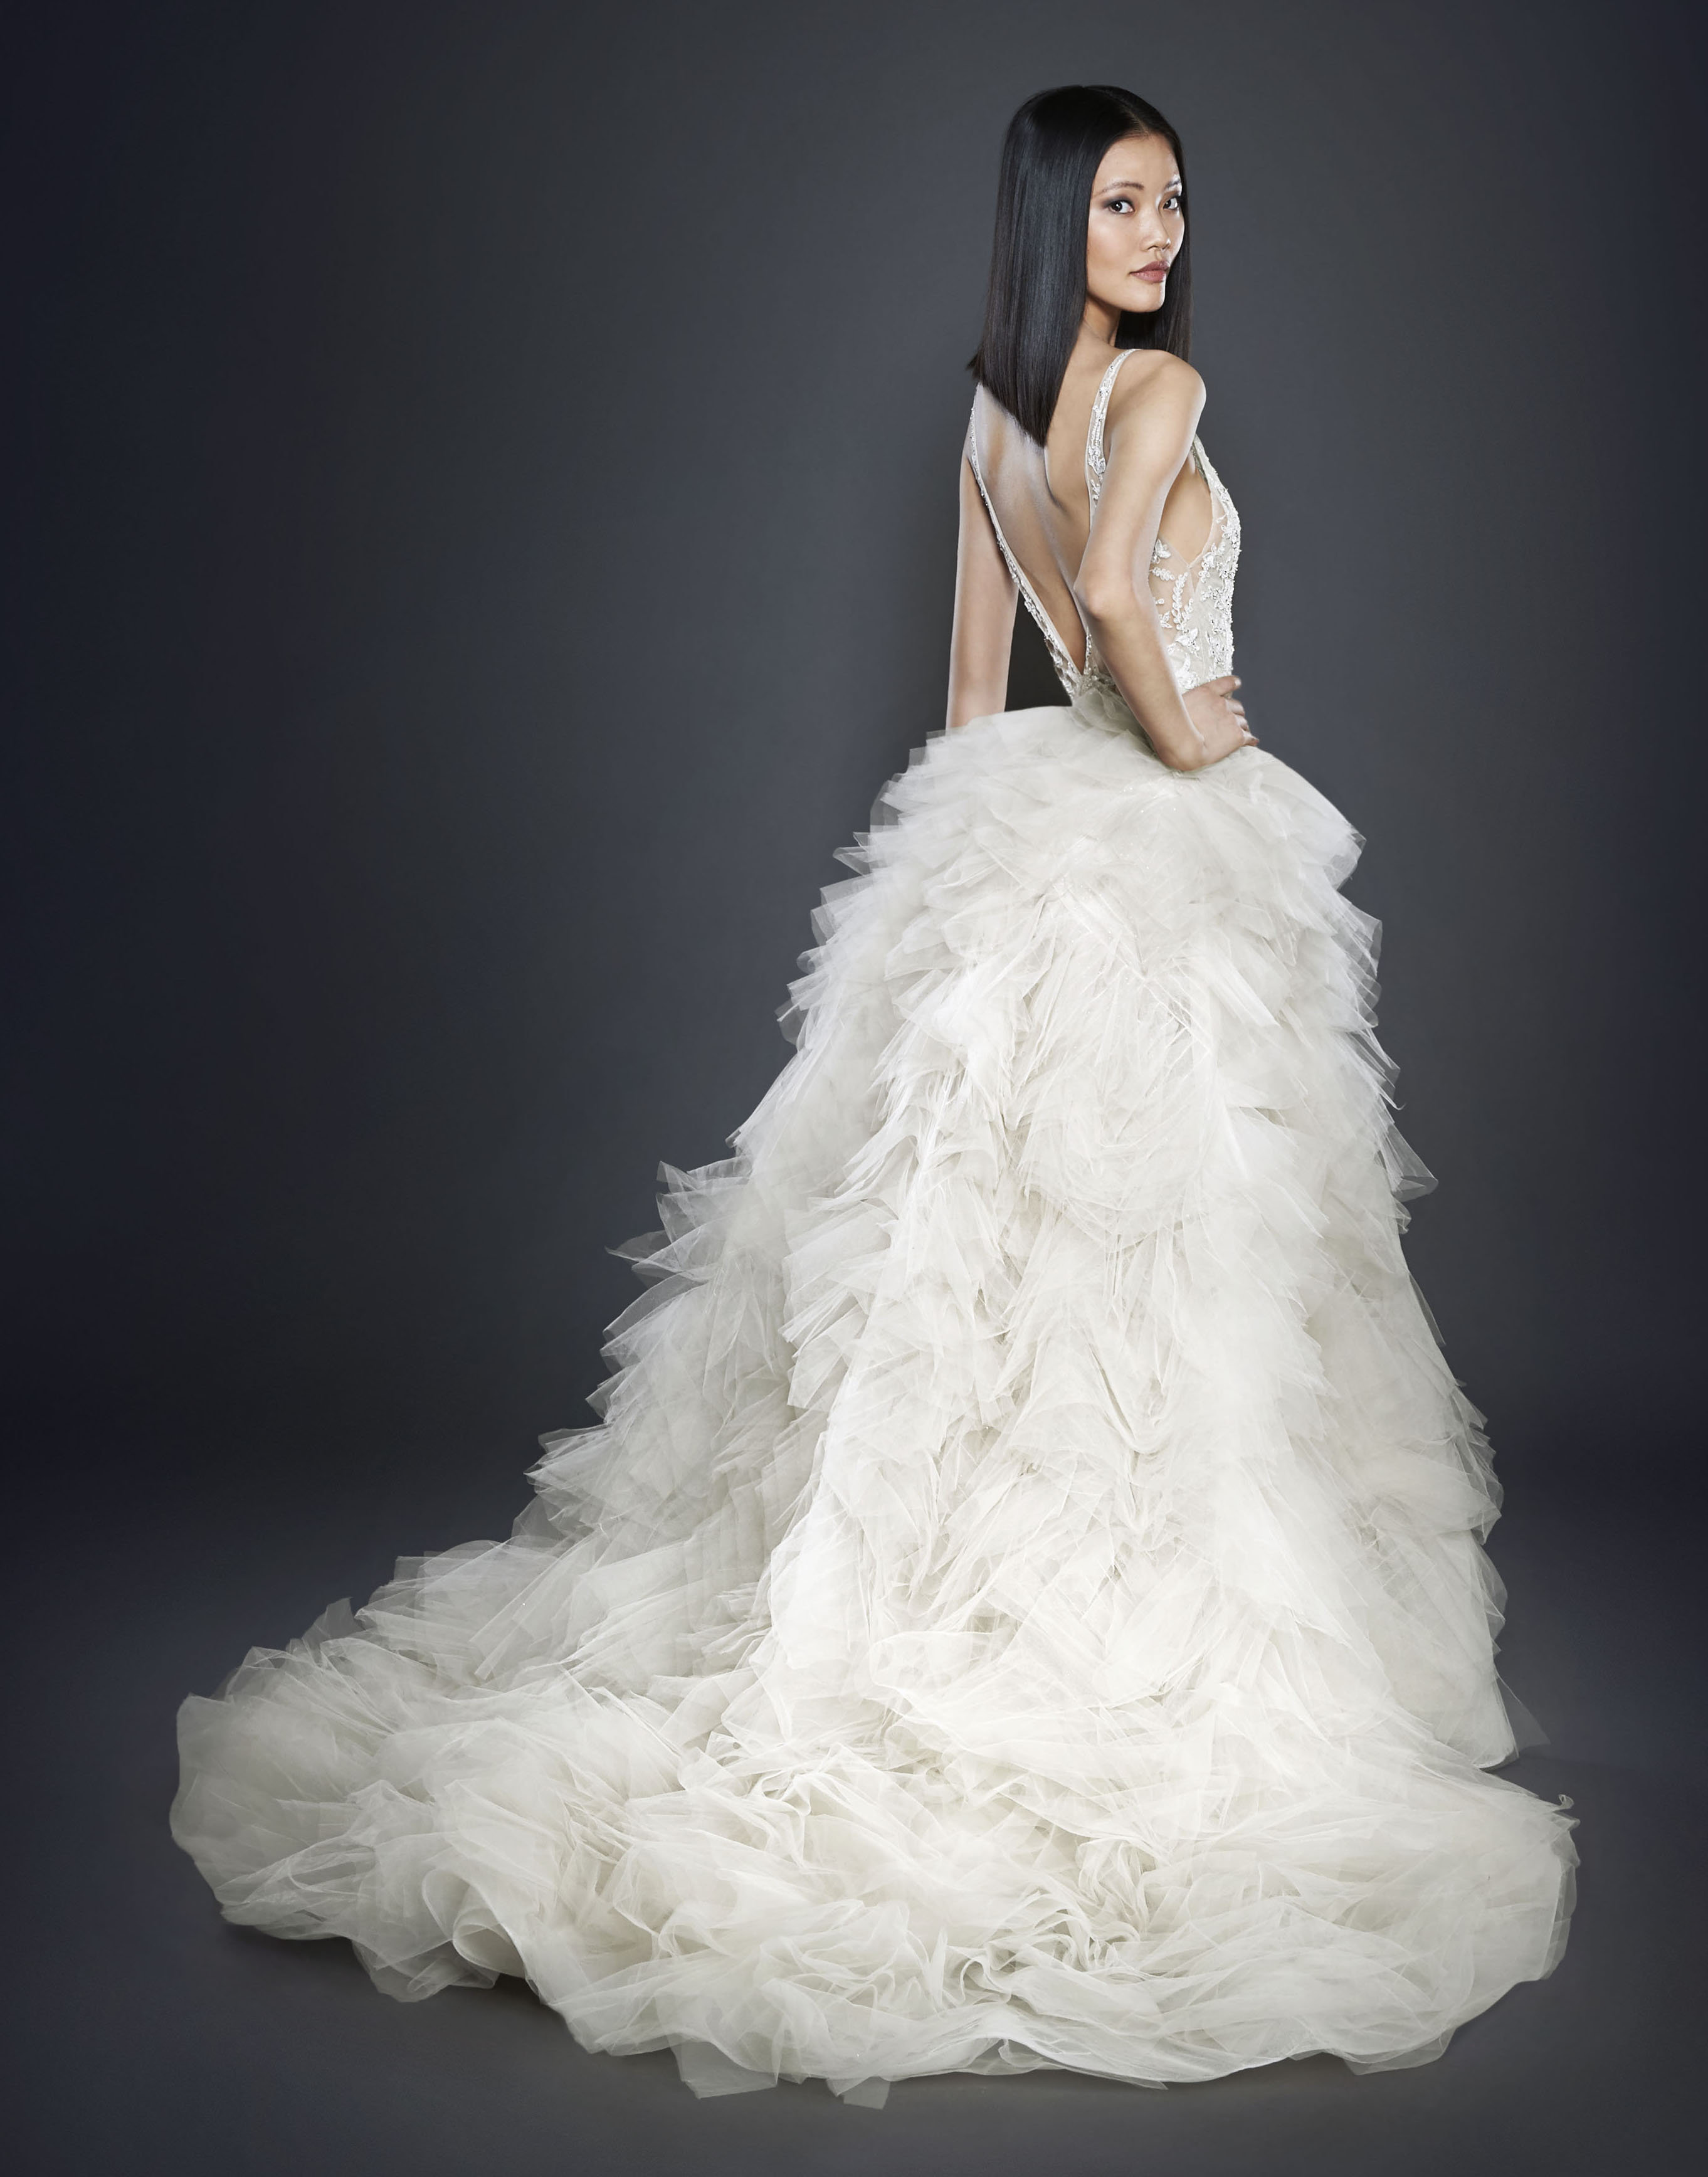 Bridal gowns and wedding dresses by jlm couture style 3700 lazaro style 3700 bridal gown junglespirit Gallery